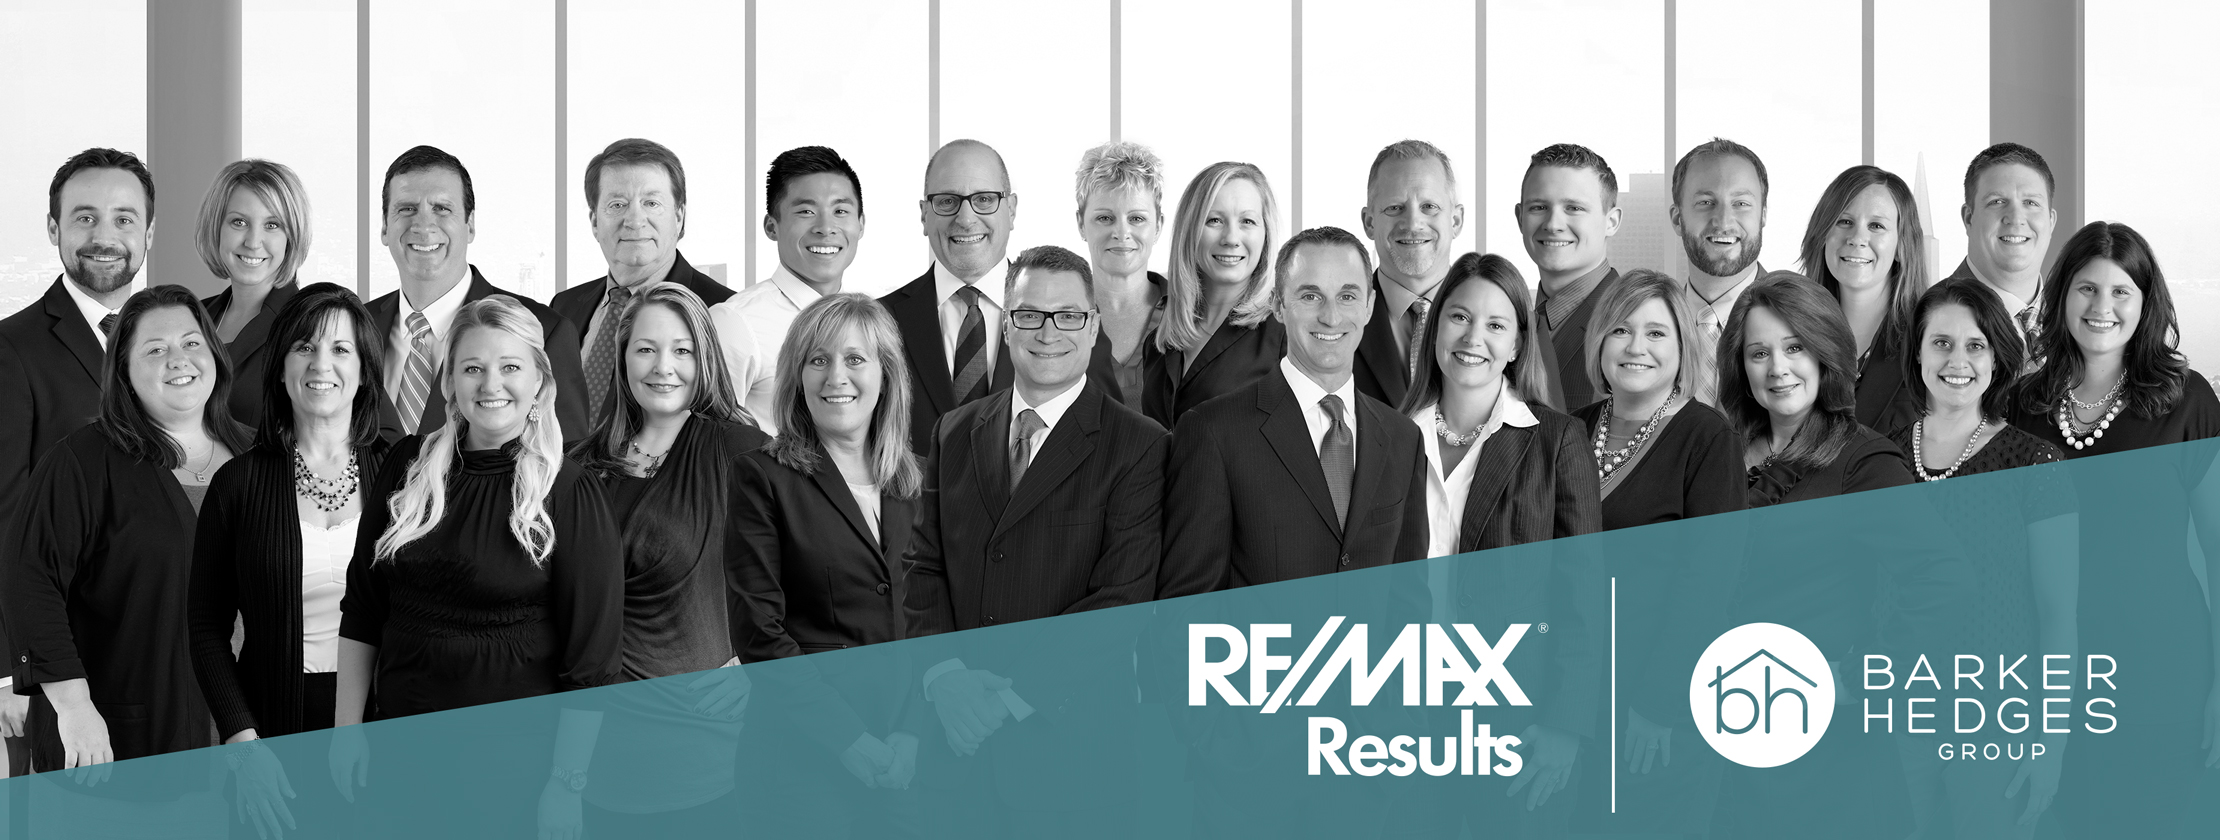 REMAX Results - Barker Hedges Group logo